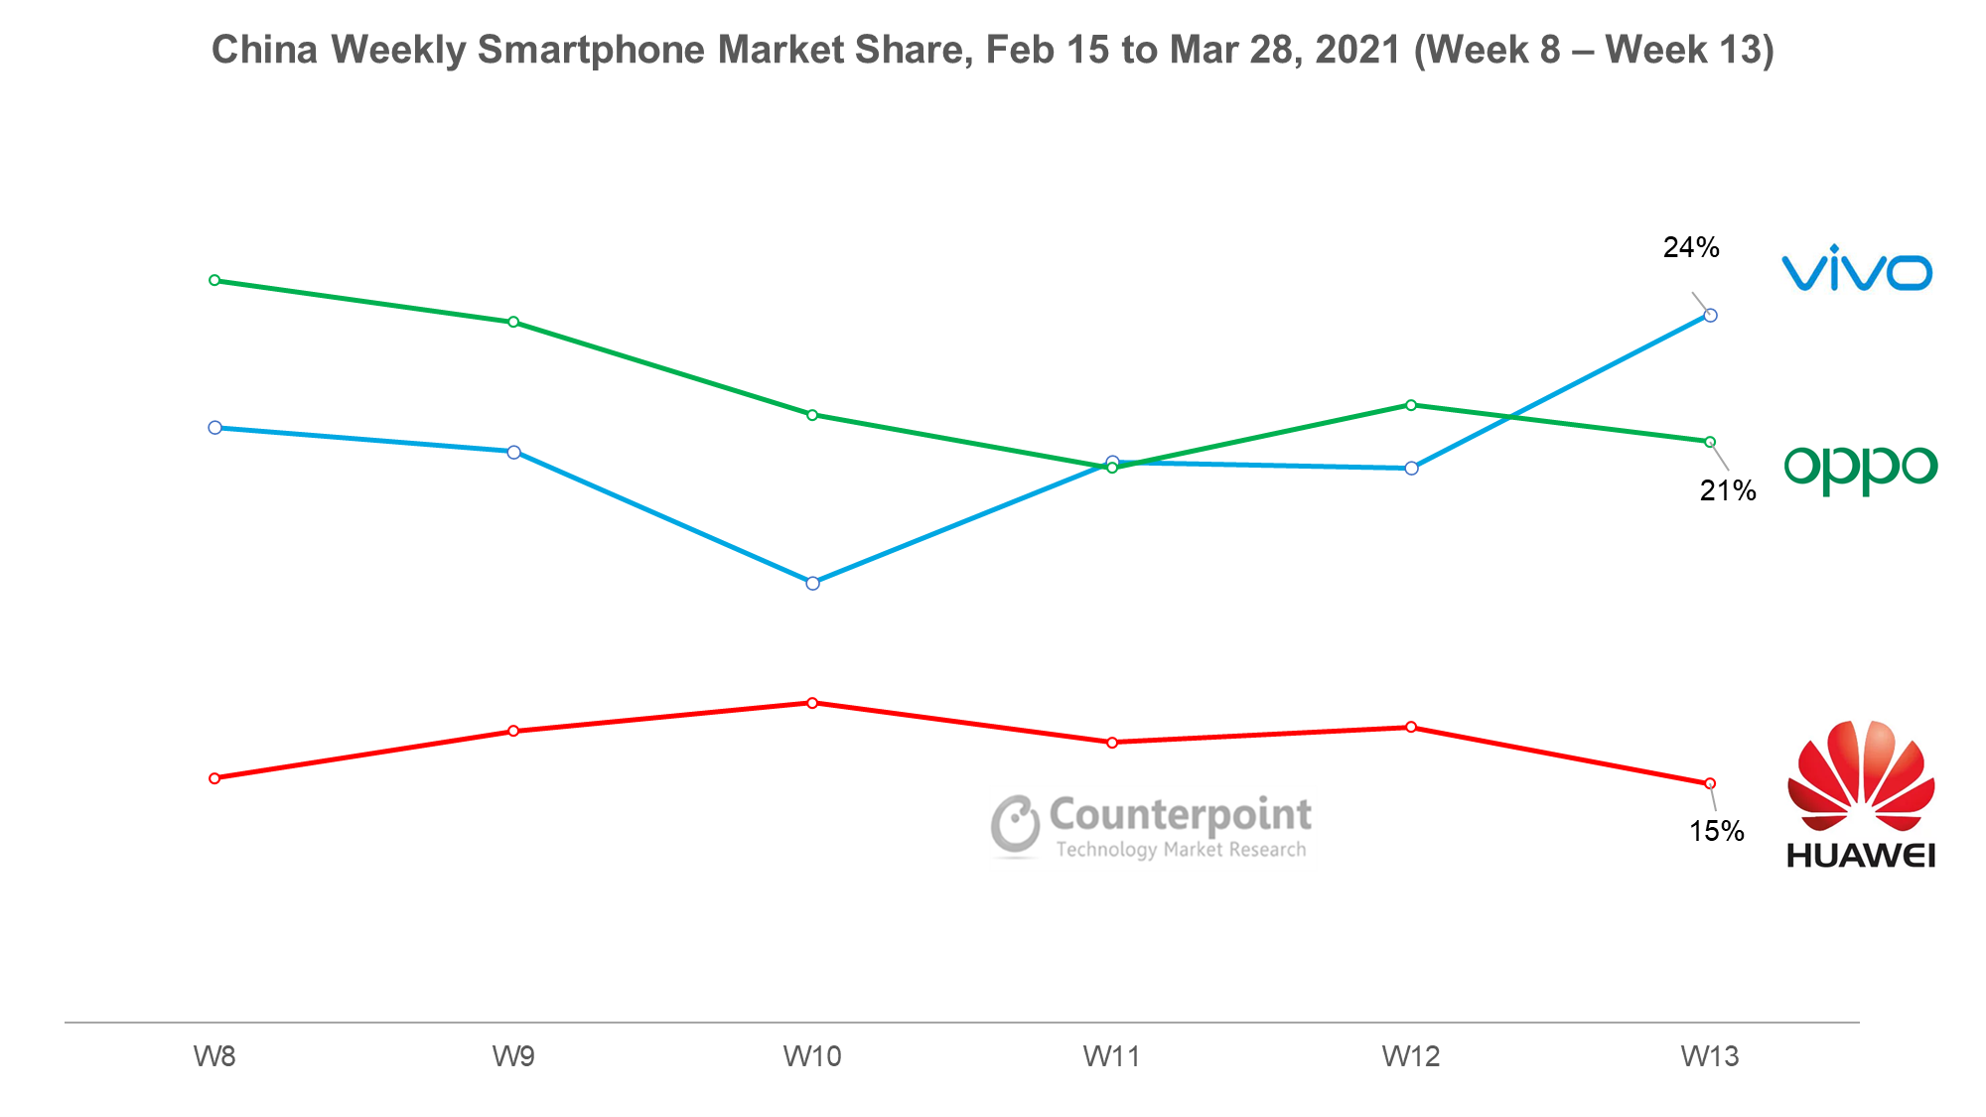 Counterpoint Research China Weekly Smartphone Market Share Wk 8 - Wk 13 2021 - Vivo Leads